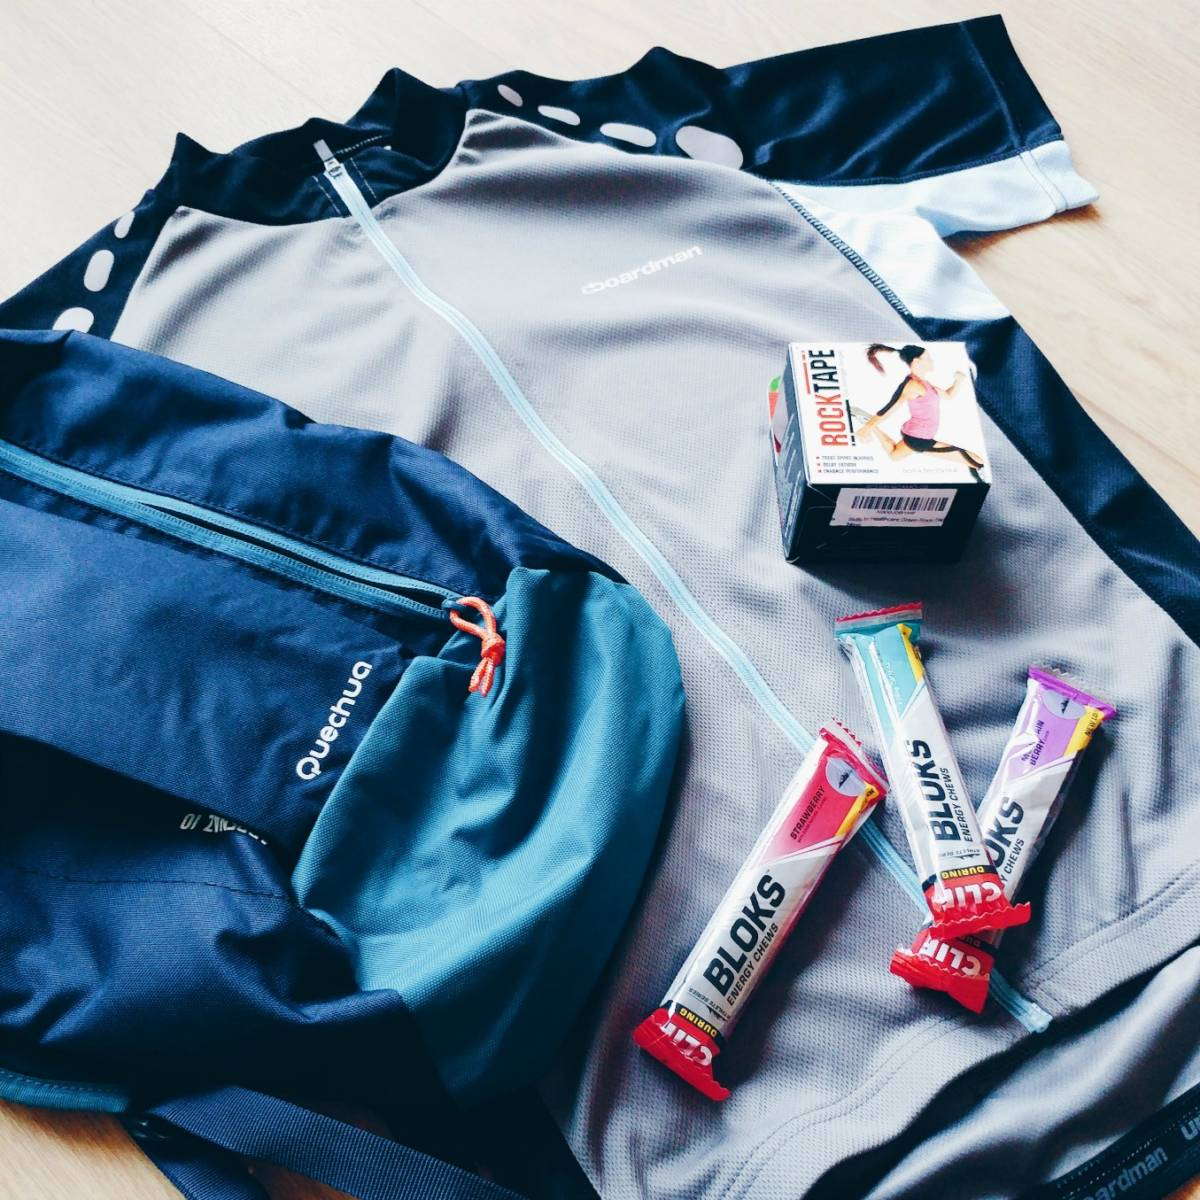 Cycling products I'm loving